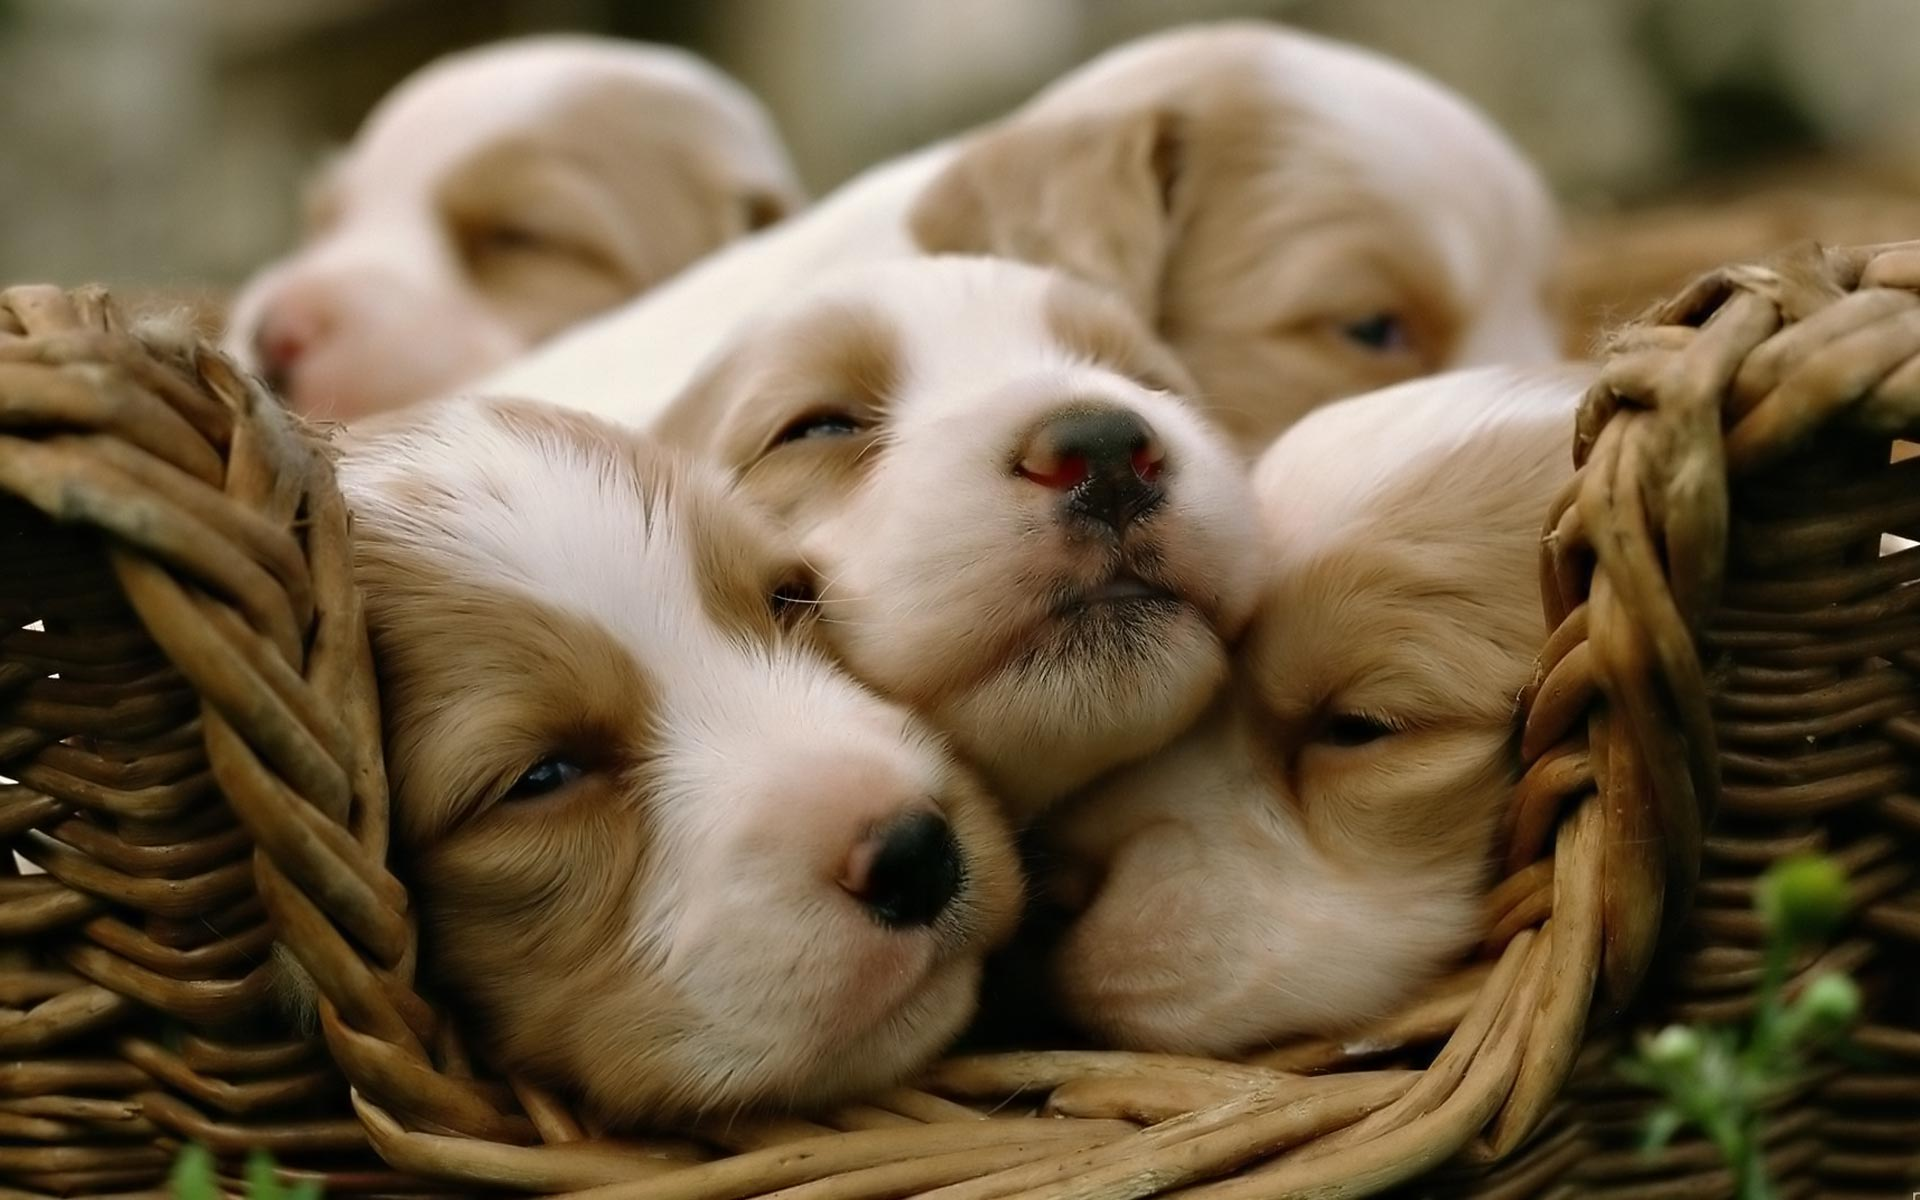 Puppies in a basket cute puppies pictures